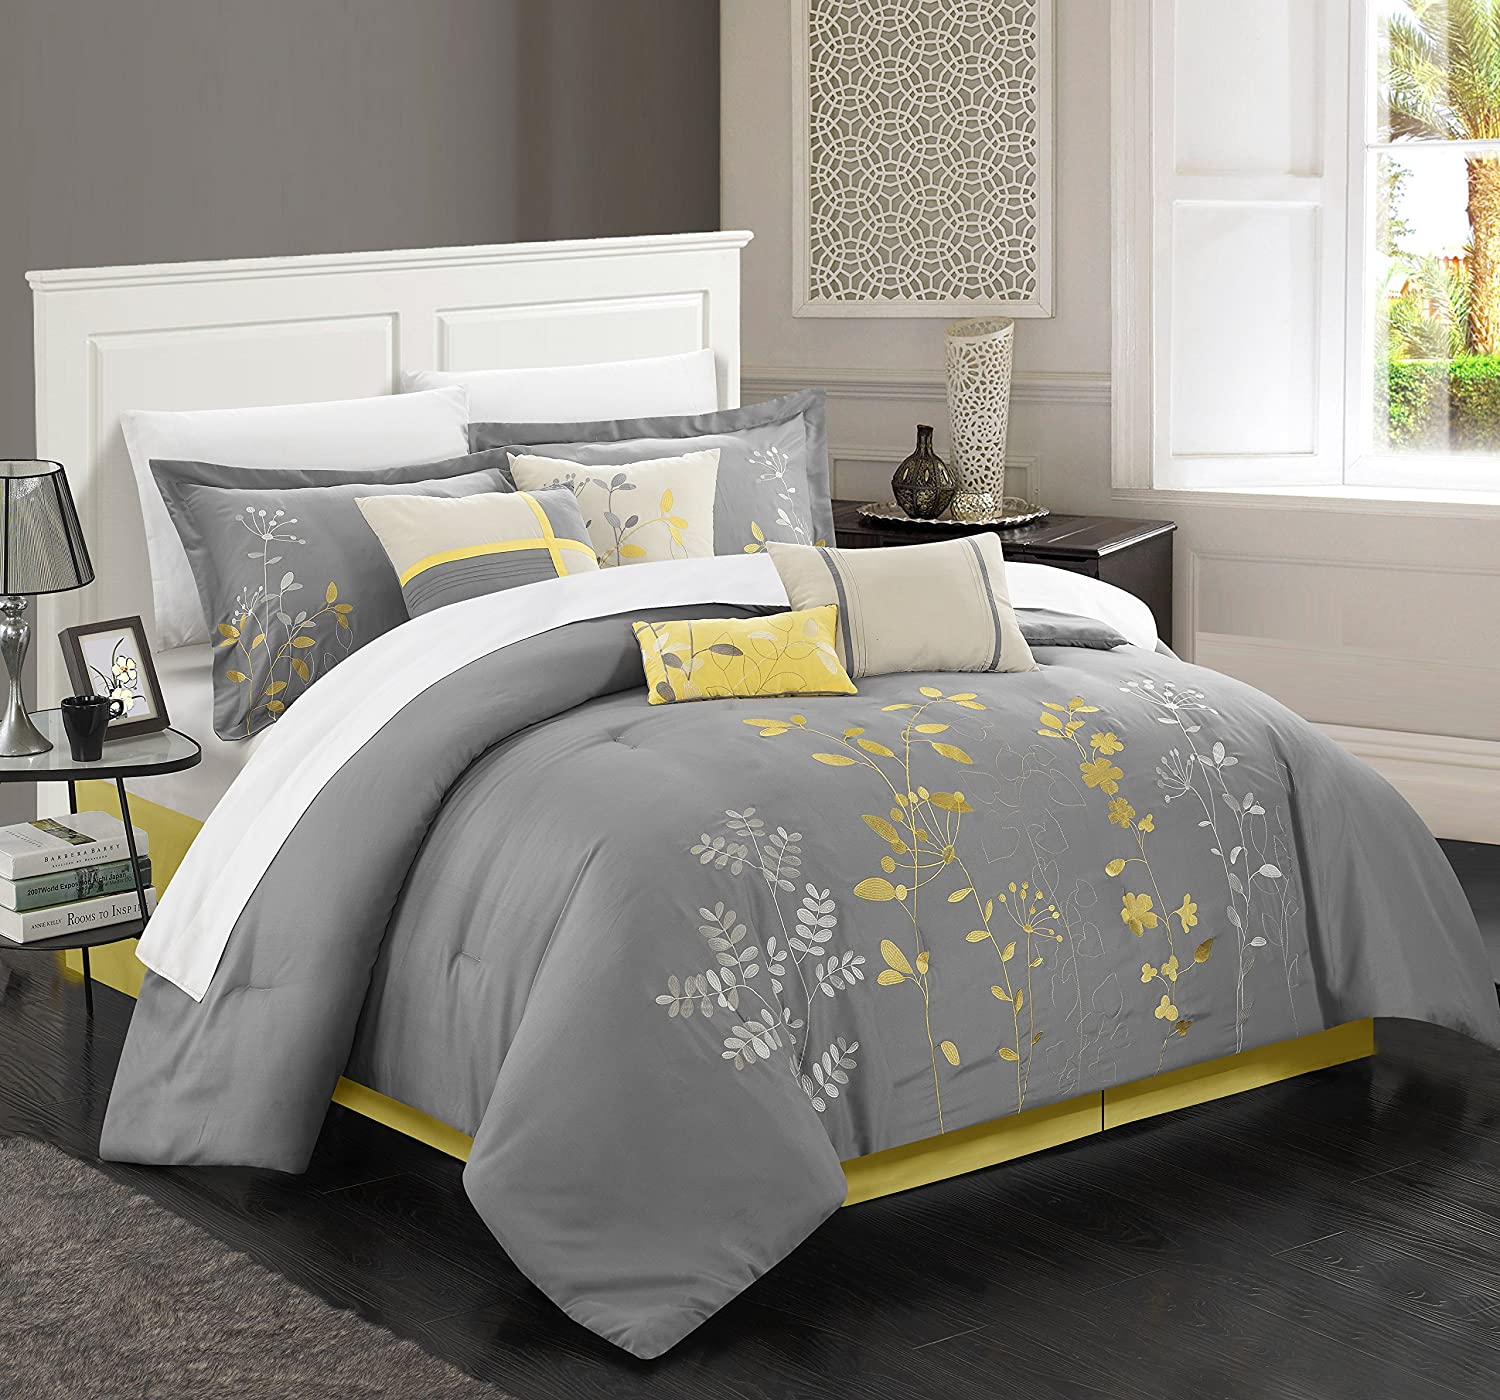 Chic Home 12-Piece Bliss Garden Embroidered Comforter Set, Yellow, King